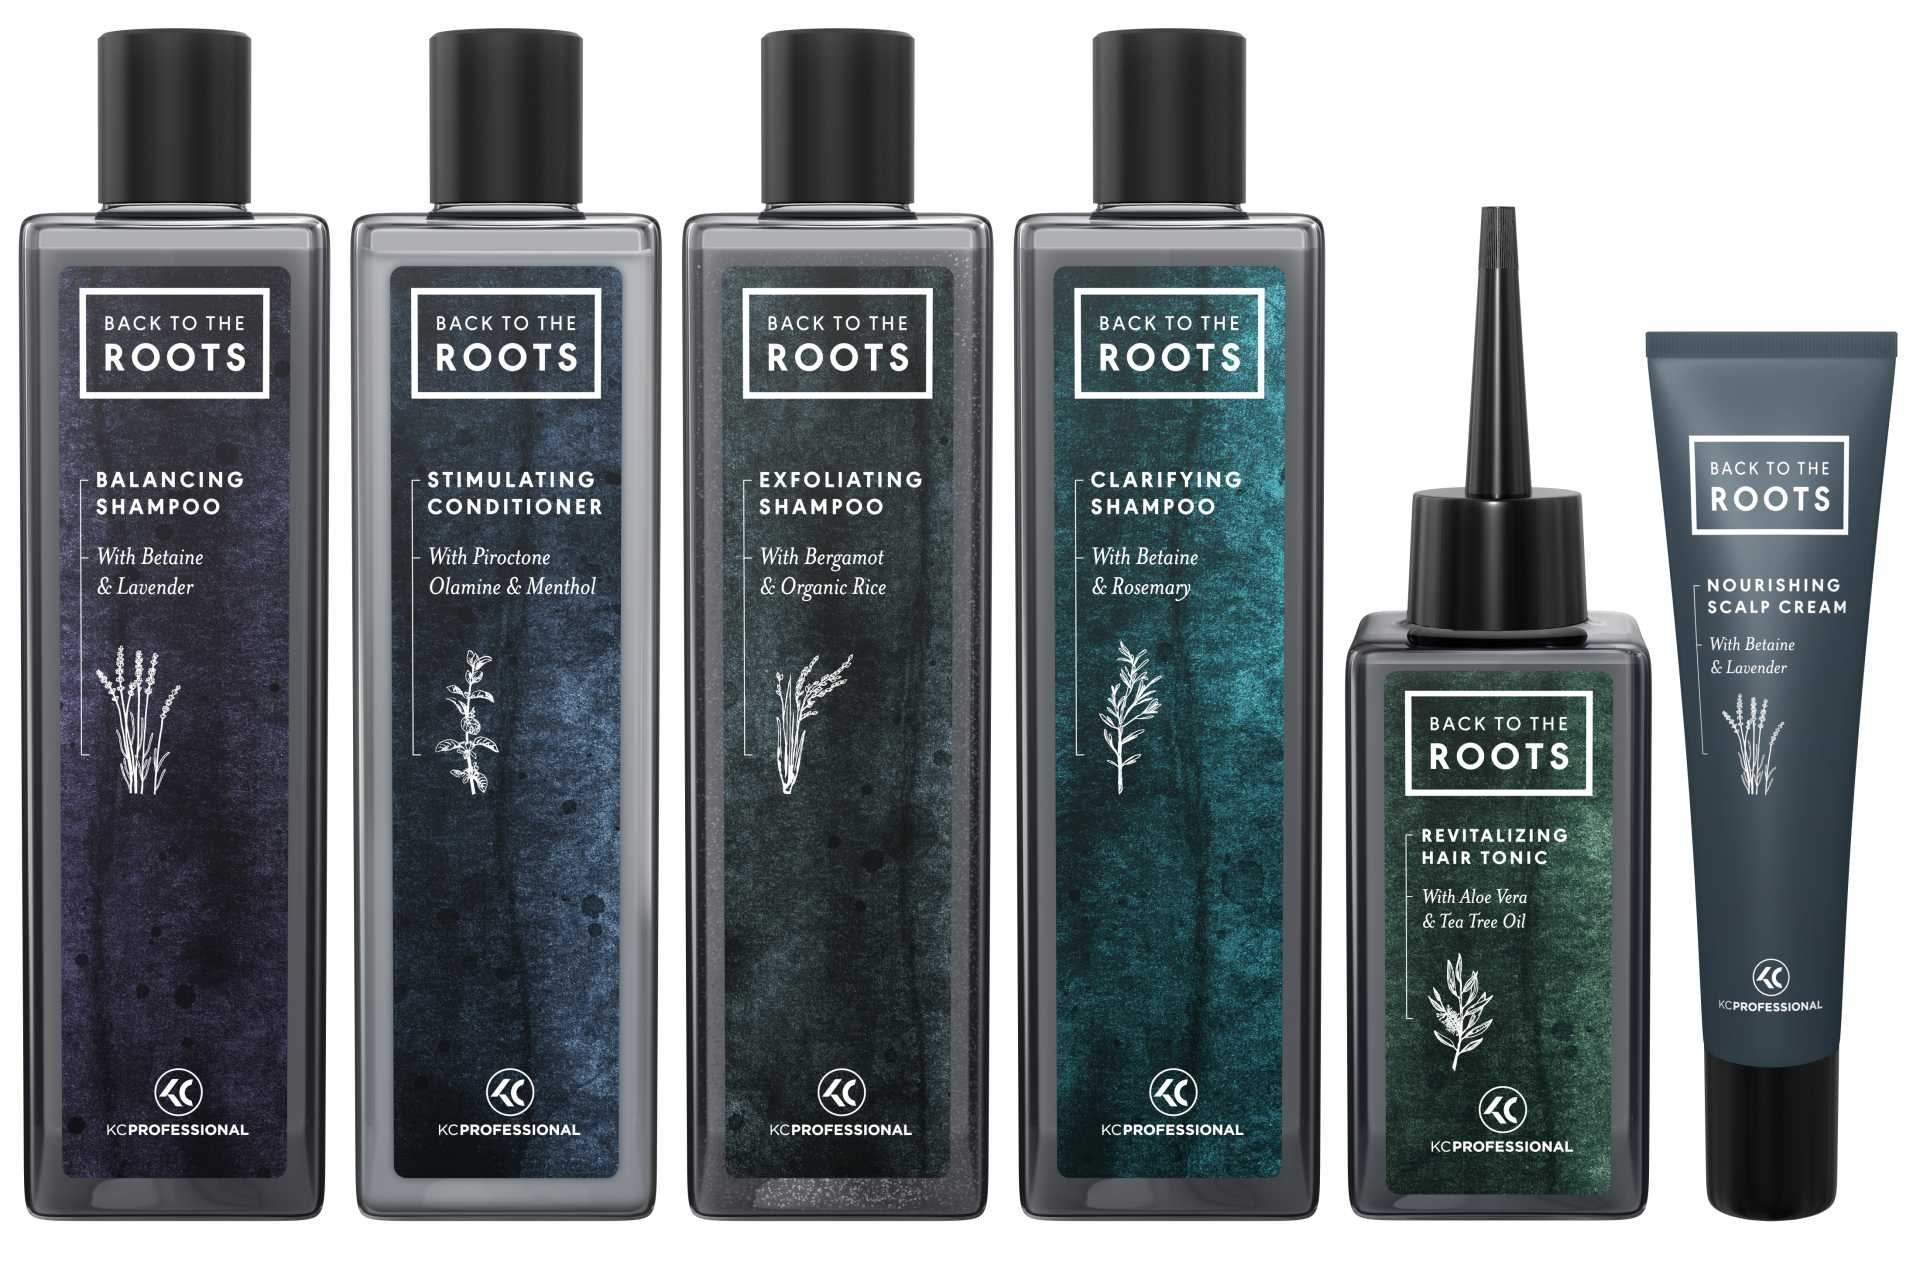 Back-to-the-Roots all-products